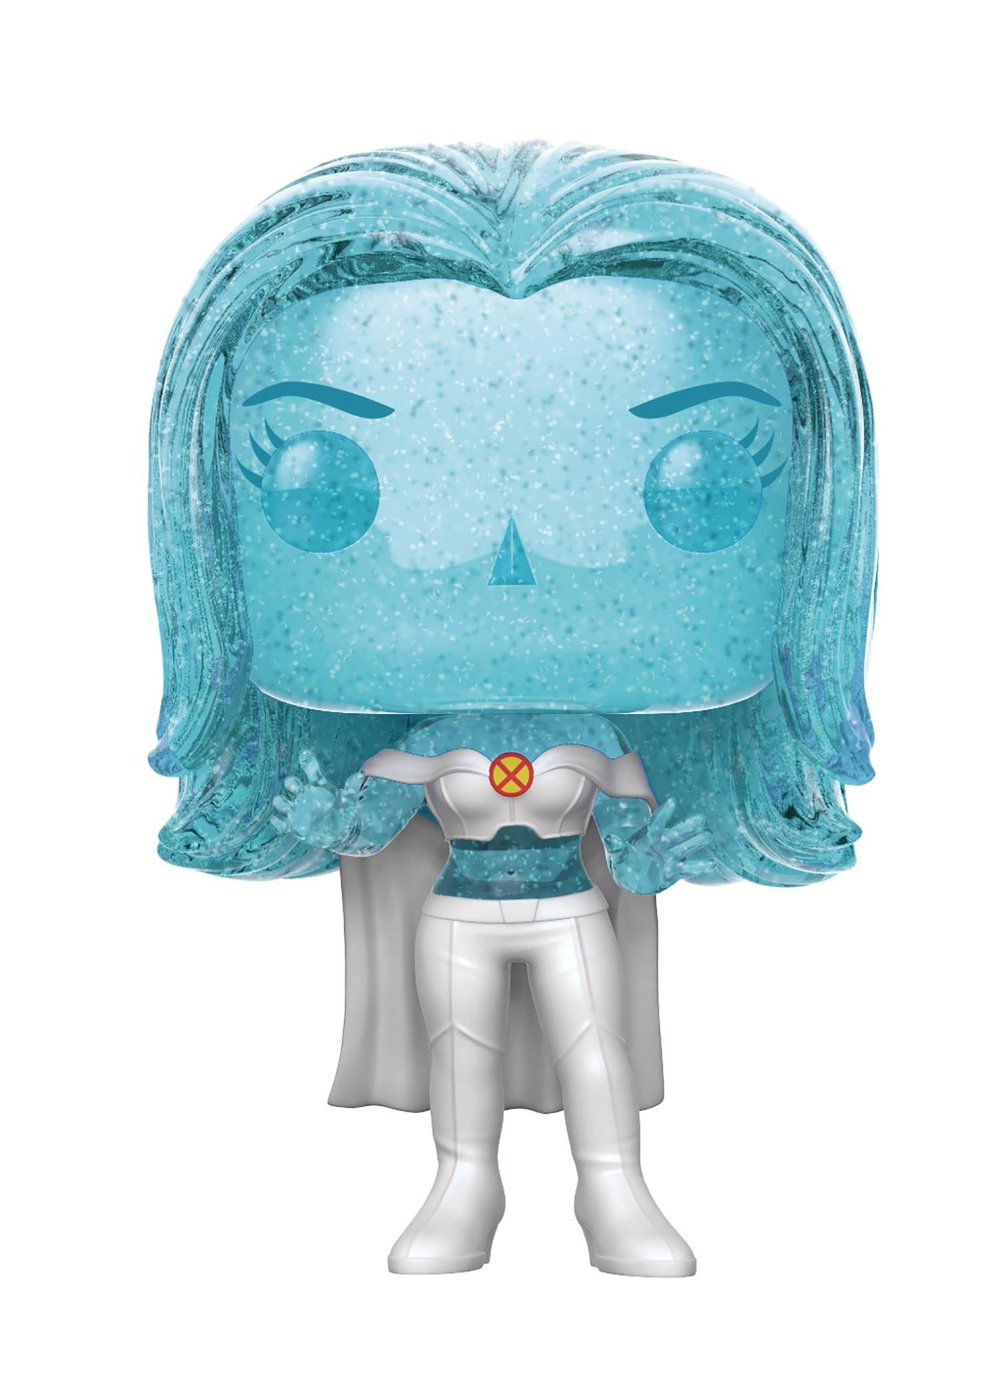 HCF 2017 POP MARVEL EMMA FROST DIAMOND FORM PX VINYL FIGURE.jpg